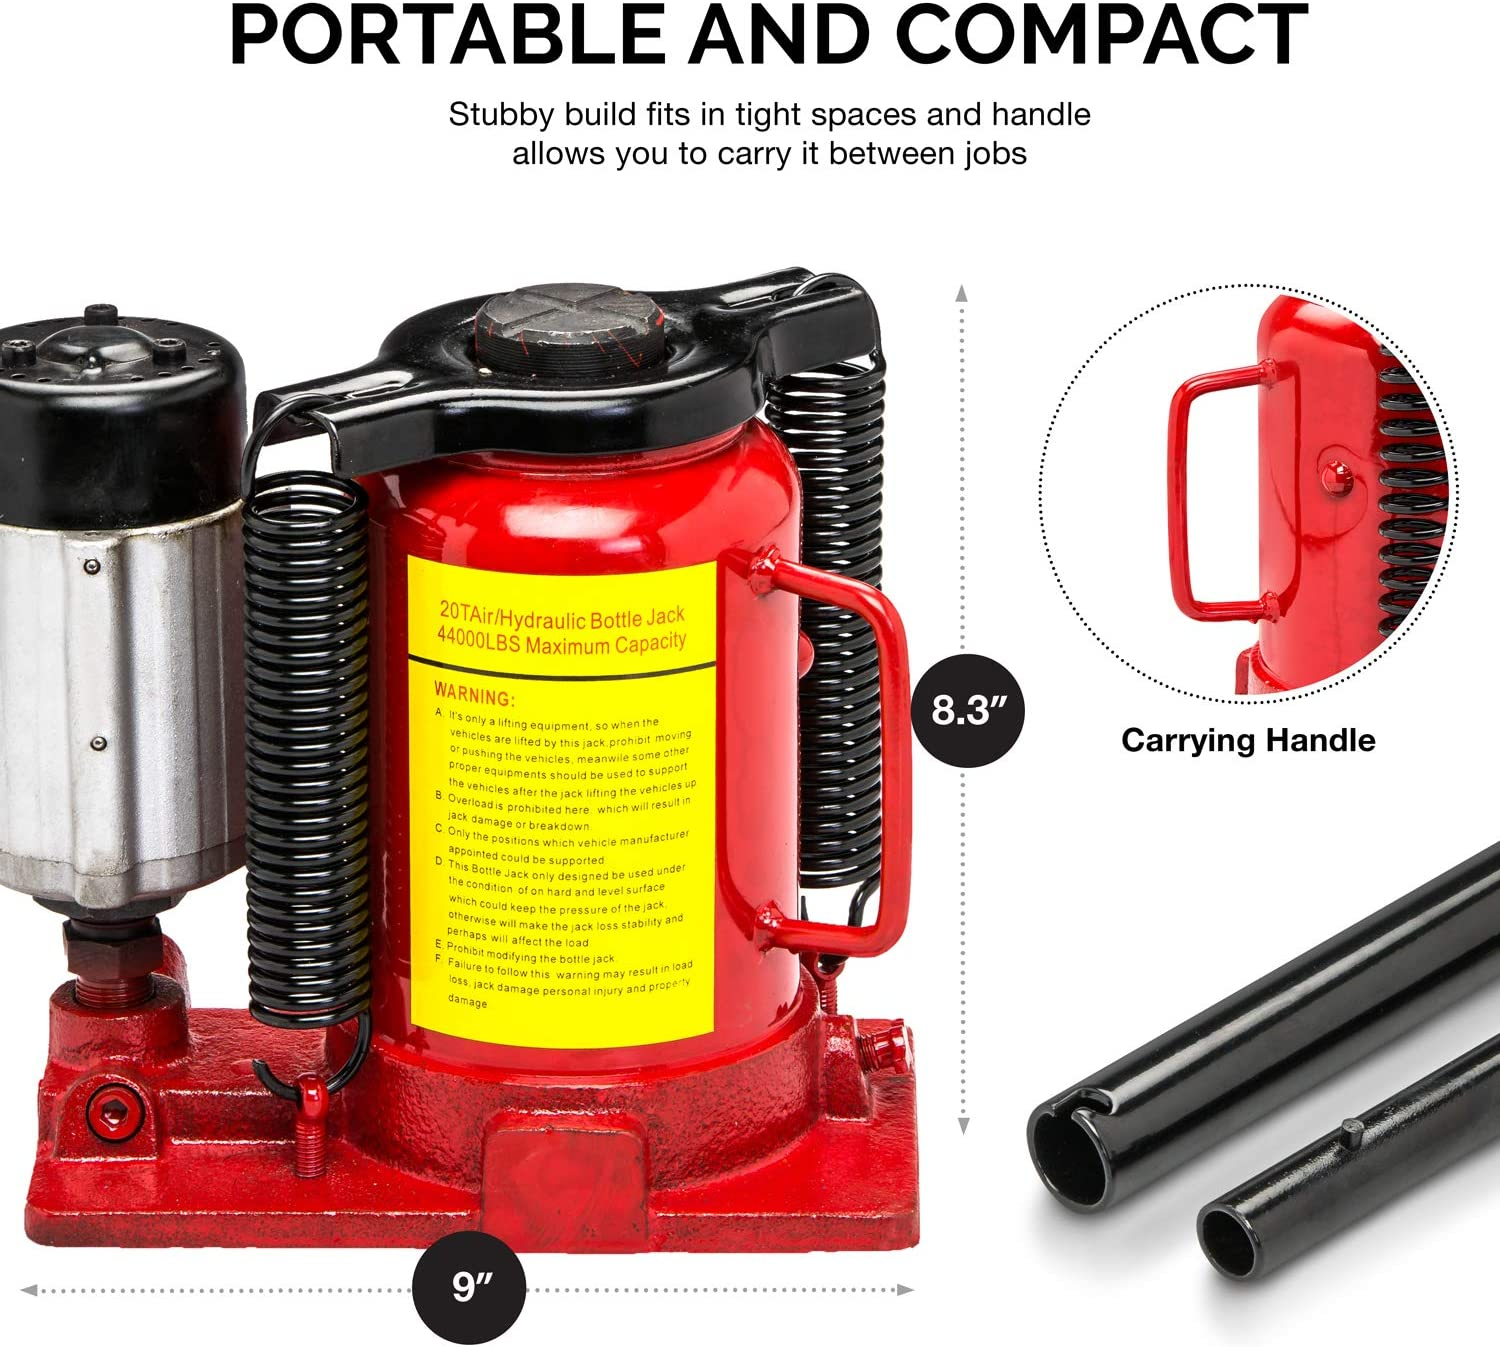 Tooluxe 31010L Low Profile Air Hydraulic Bottle Jack || 20